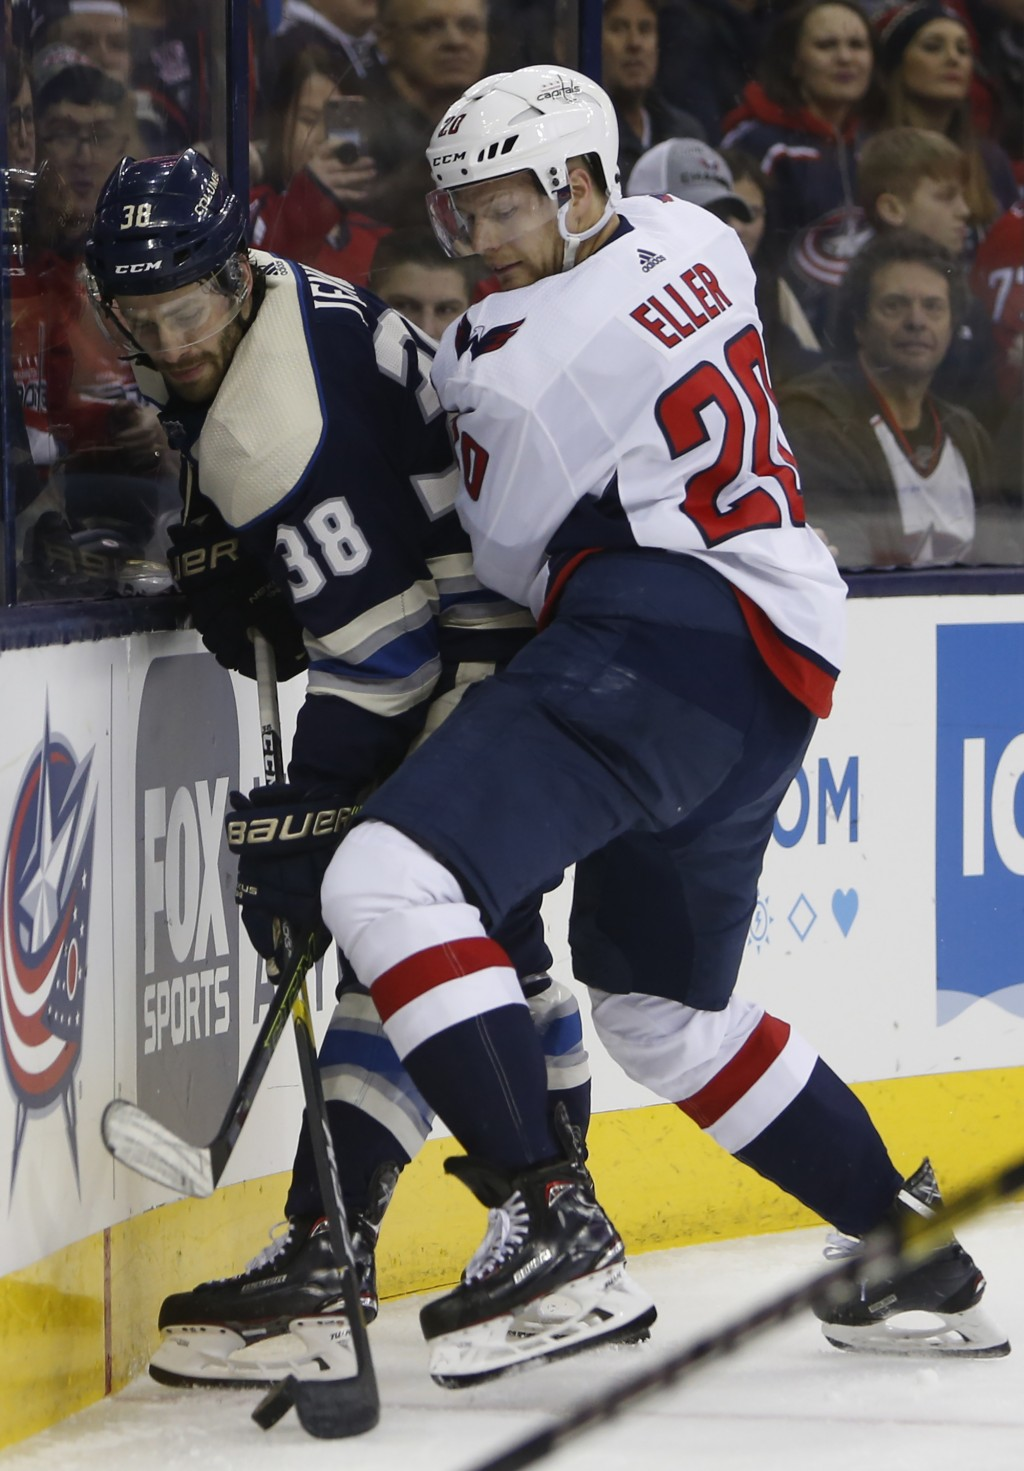 Columbus Blue Jackets' Boone Jenner, left, and Washington Capitals' Lars Eller, of Denmark, right, fight for a loose puck during the first period of a